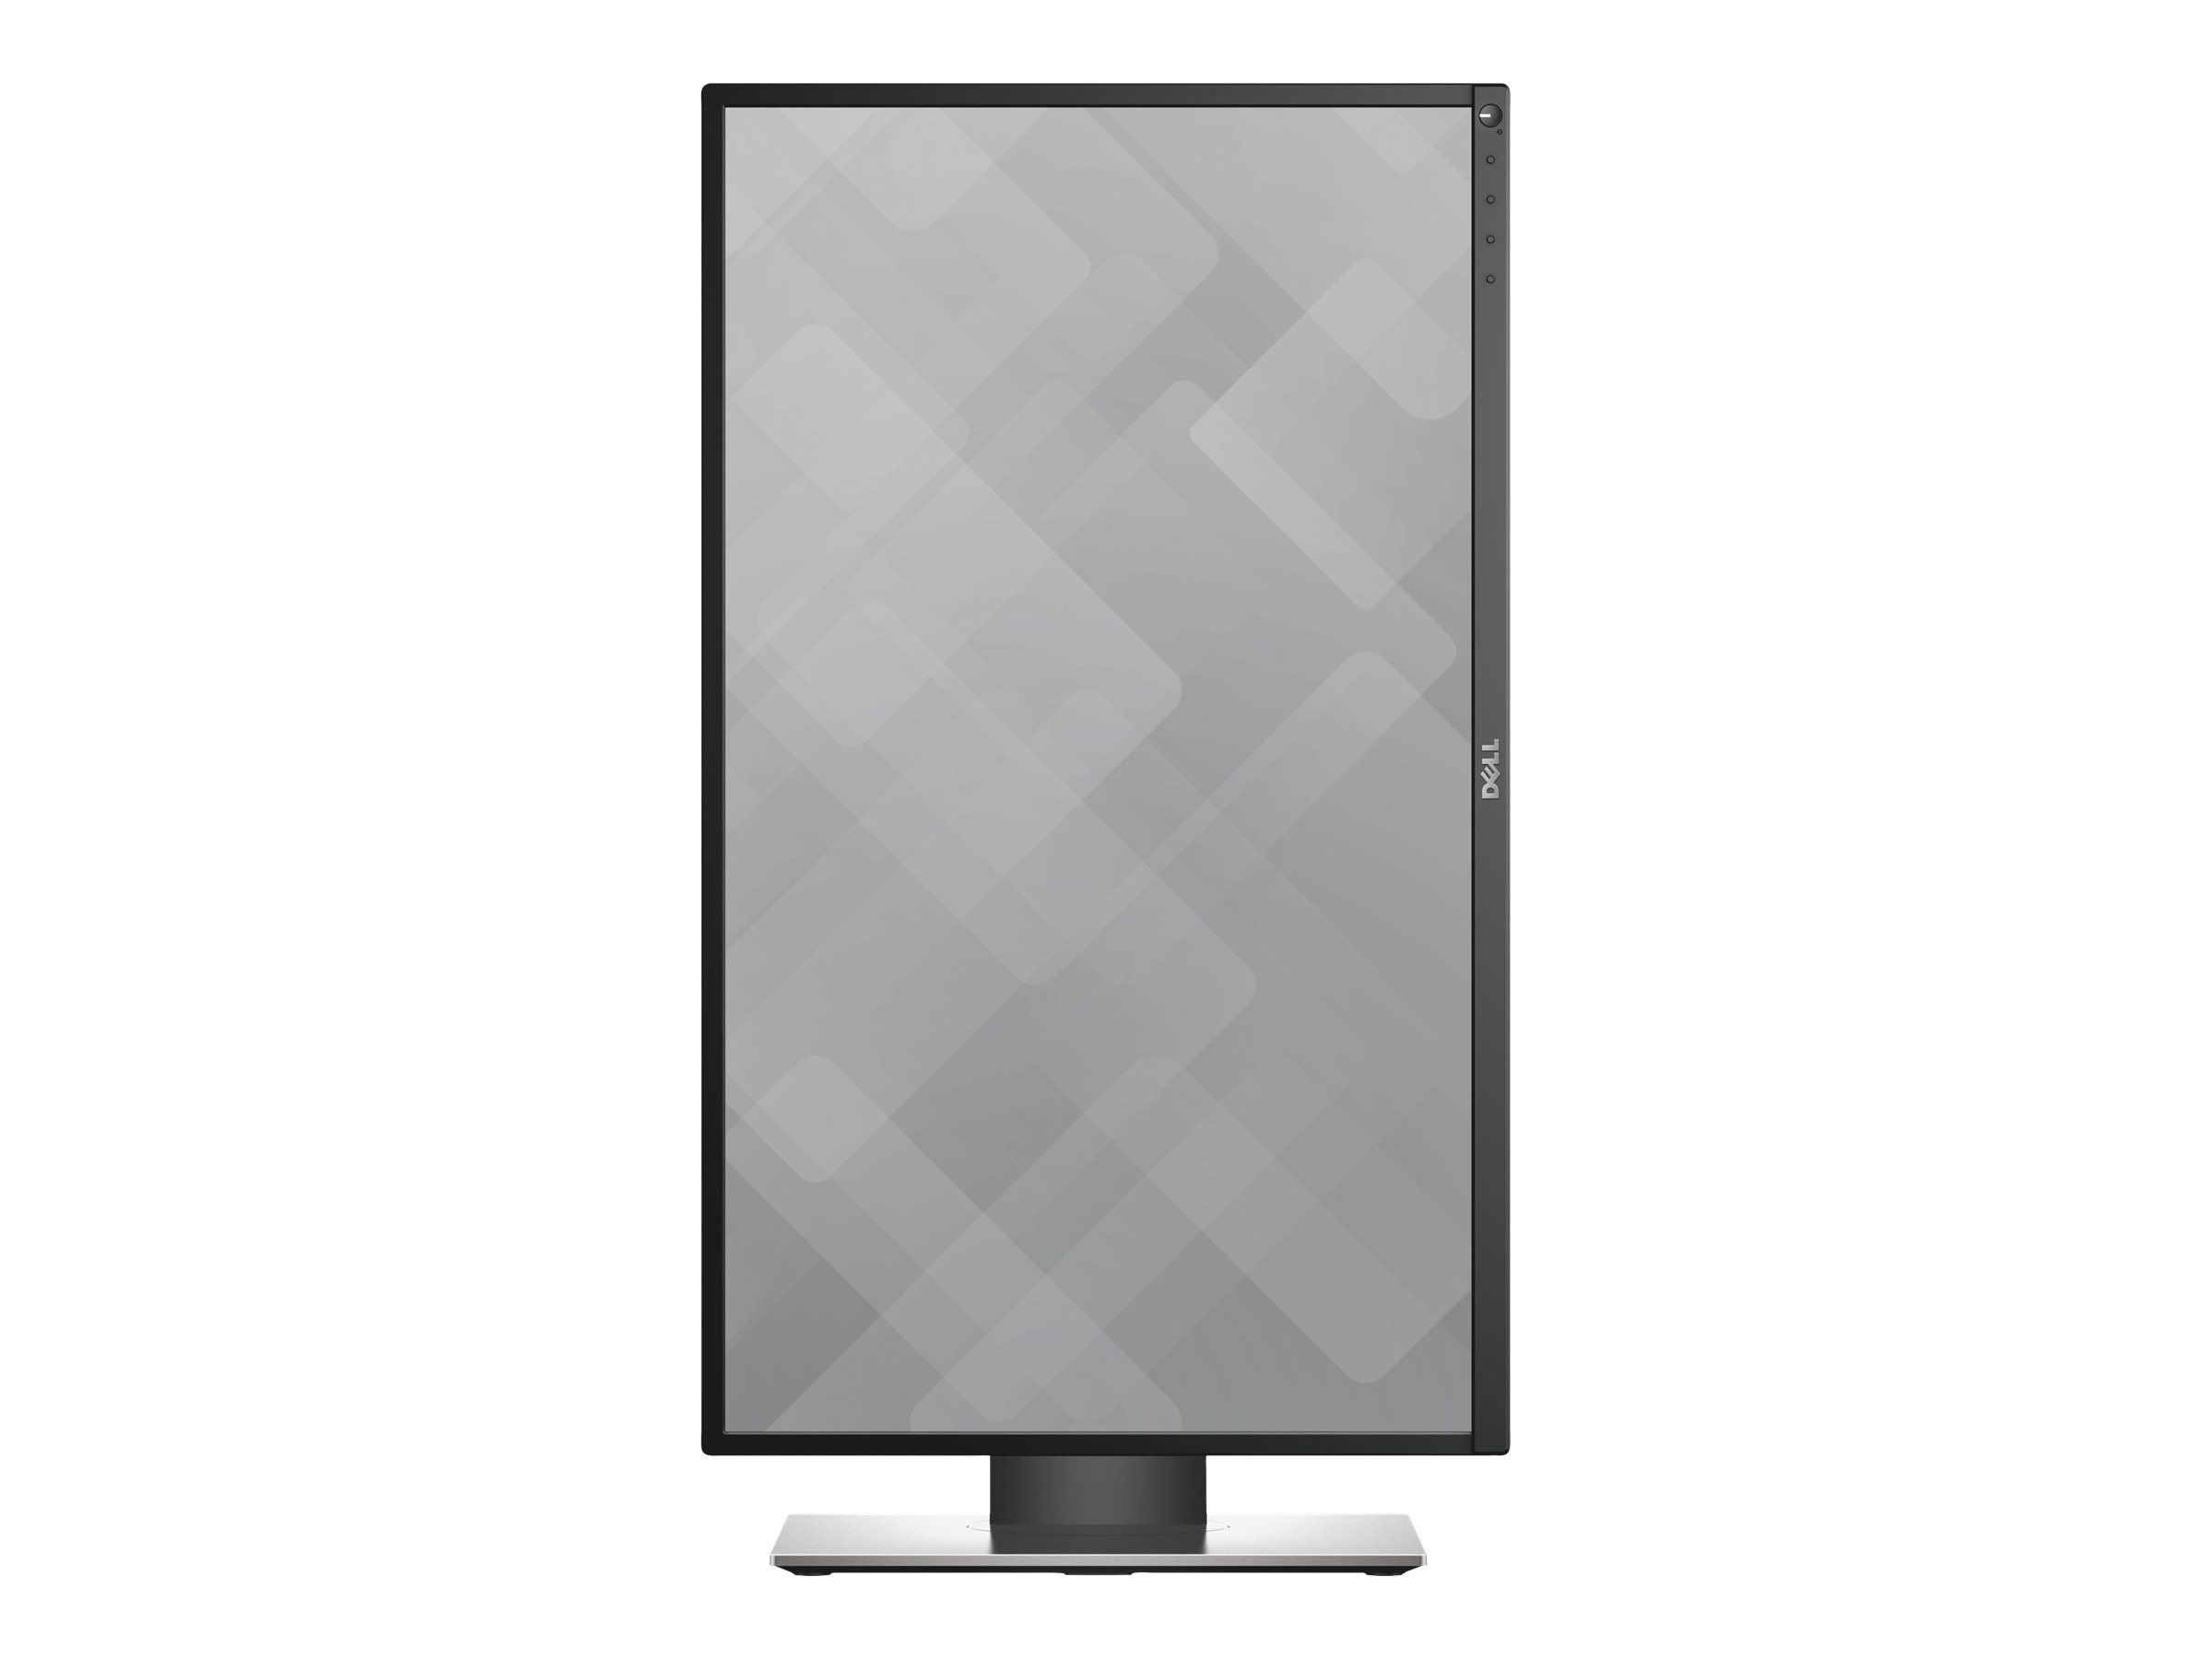 Dell P2217H - Ohne Standfuß - LED-Monitor - 55.9 cm (22